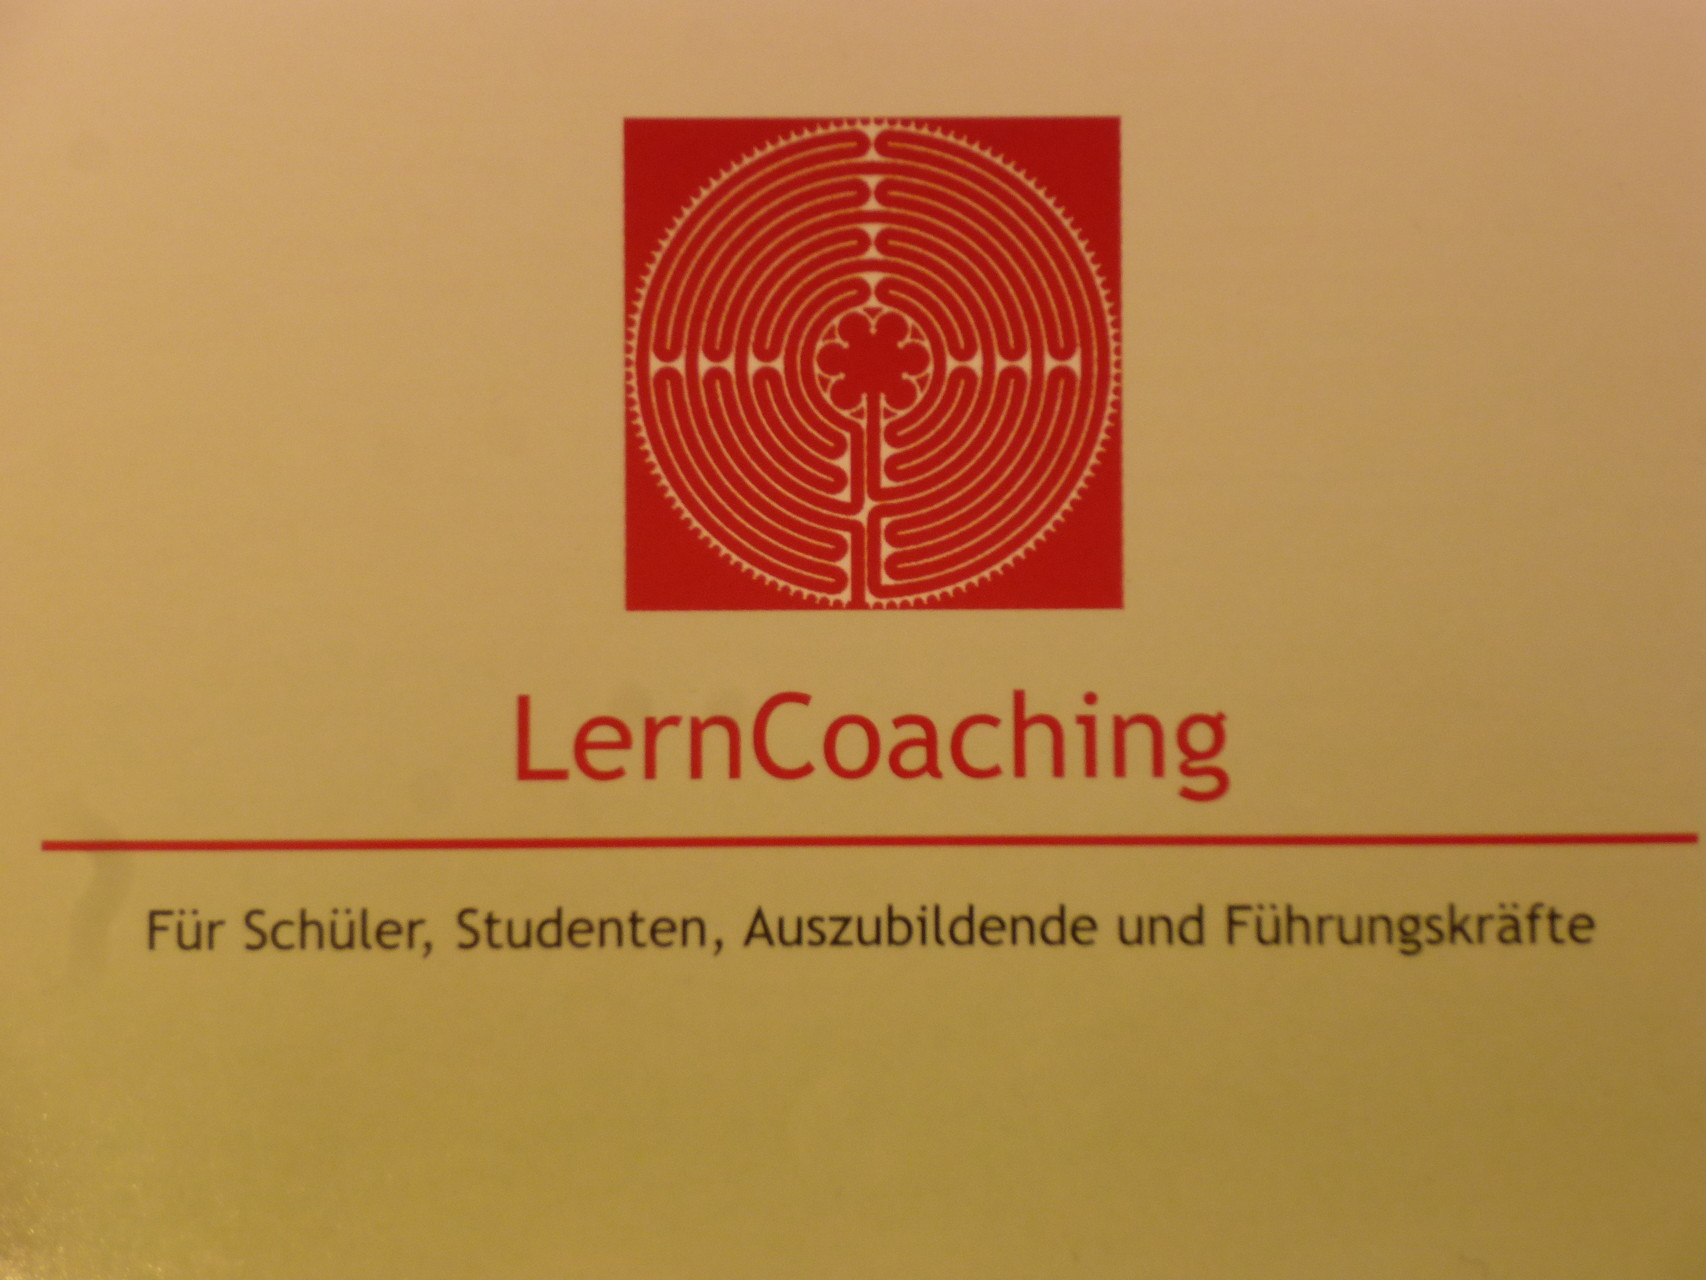 Flyer LernCoaching!